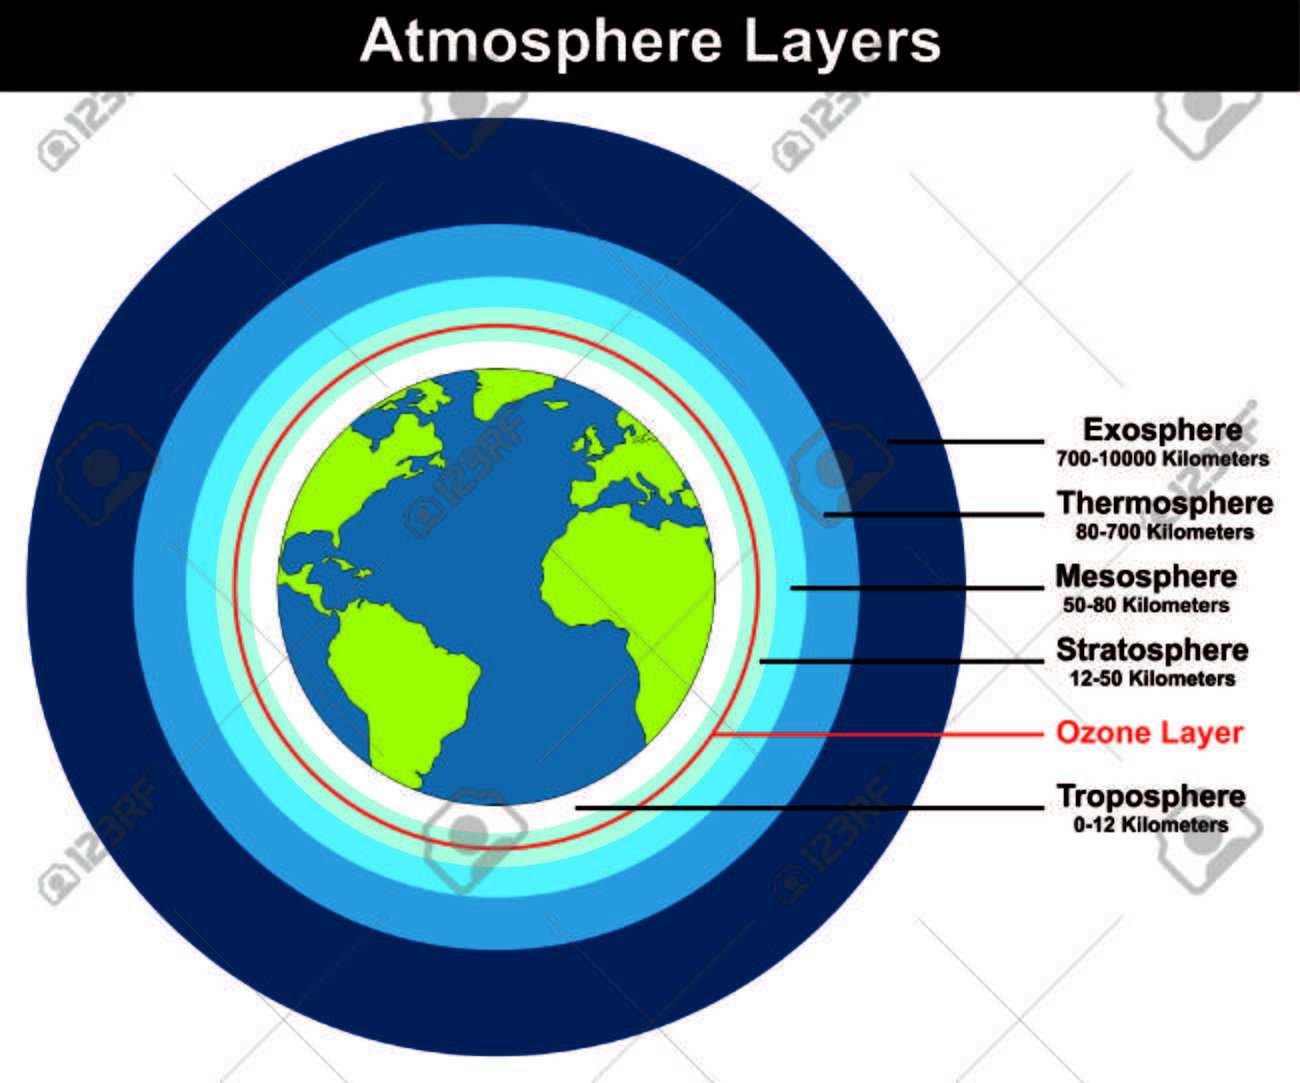 hight resolution of atmosphere layers structure of earth globe approximate thickness length kilometers diagram with ozone layer troposhere stratosphere